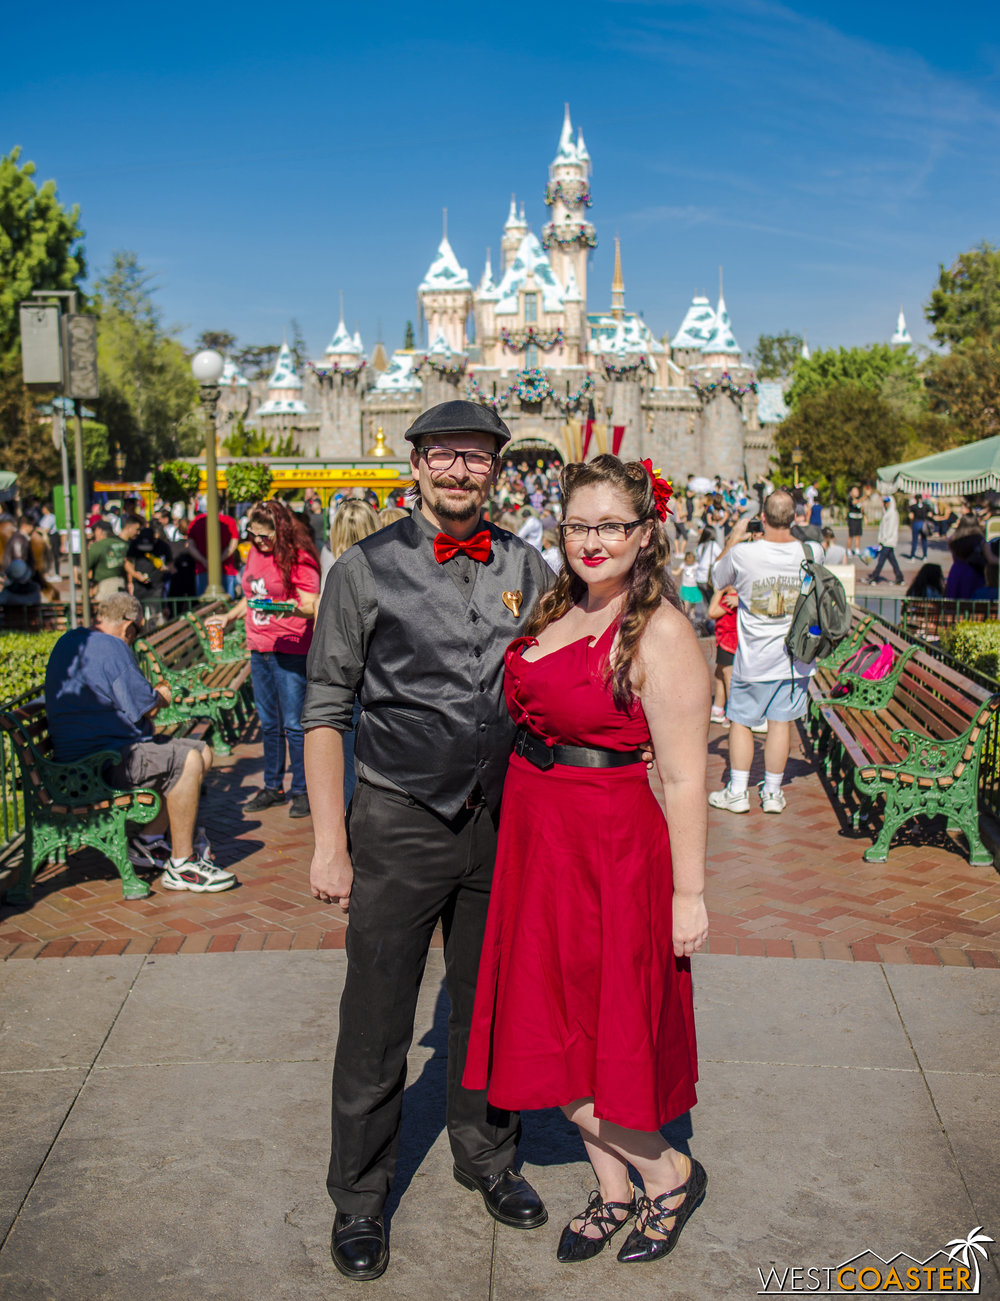 Our friends, Shaun and Jessica went as Jafar and Iago for their DisneyBound.